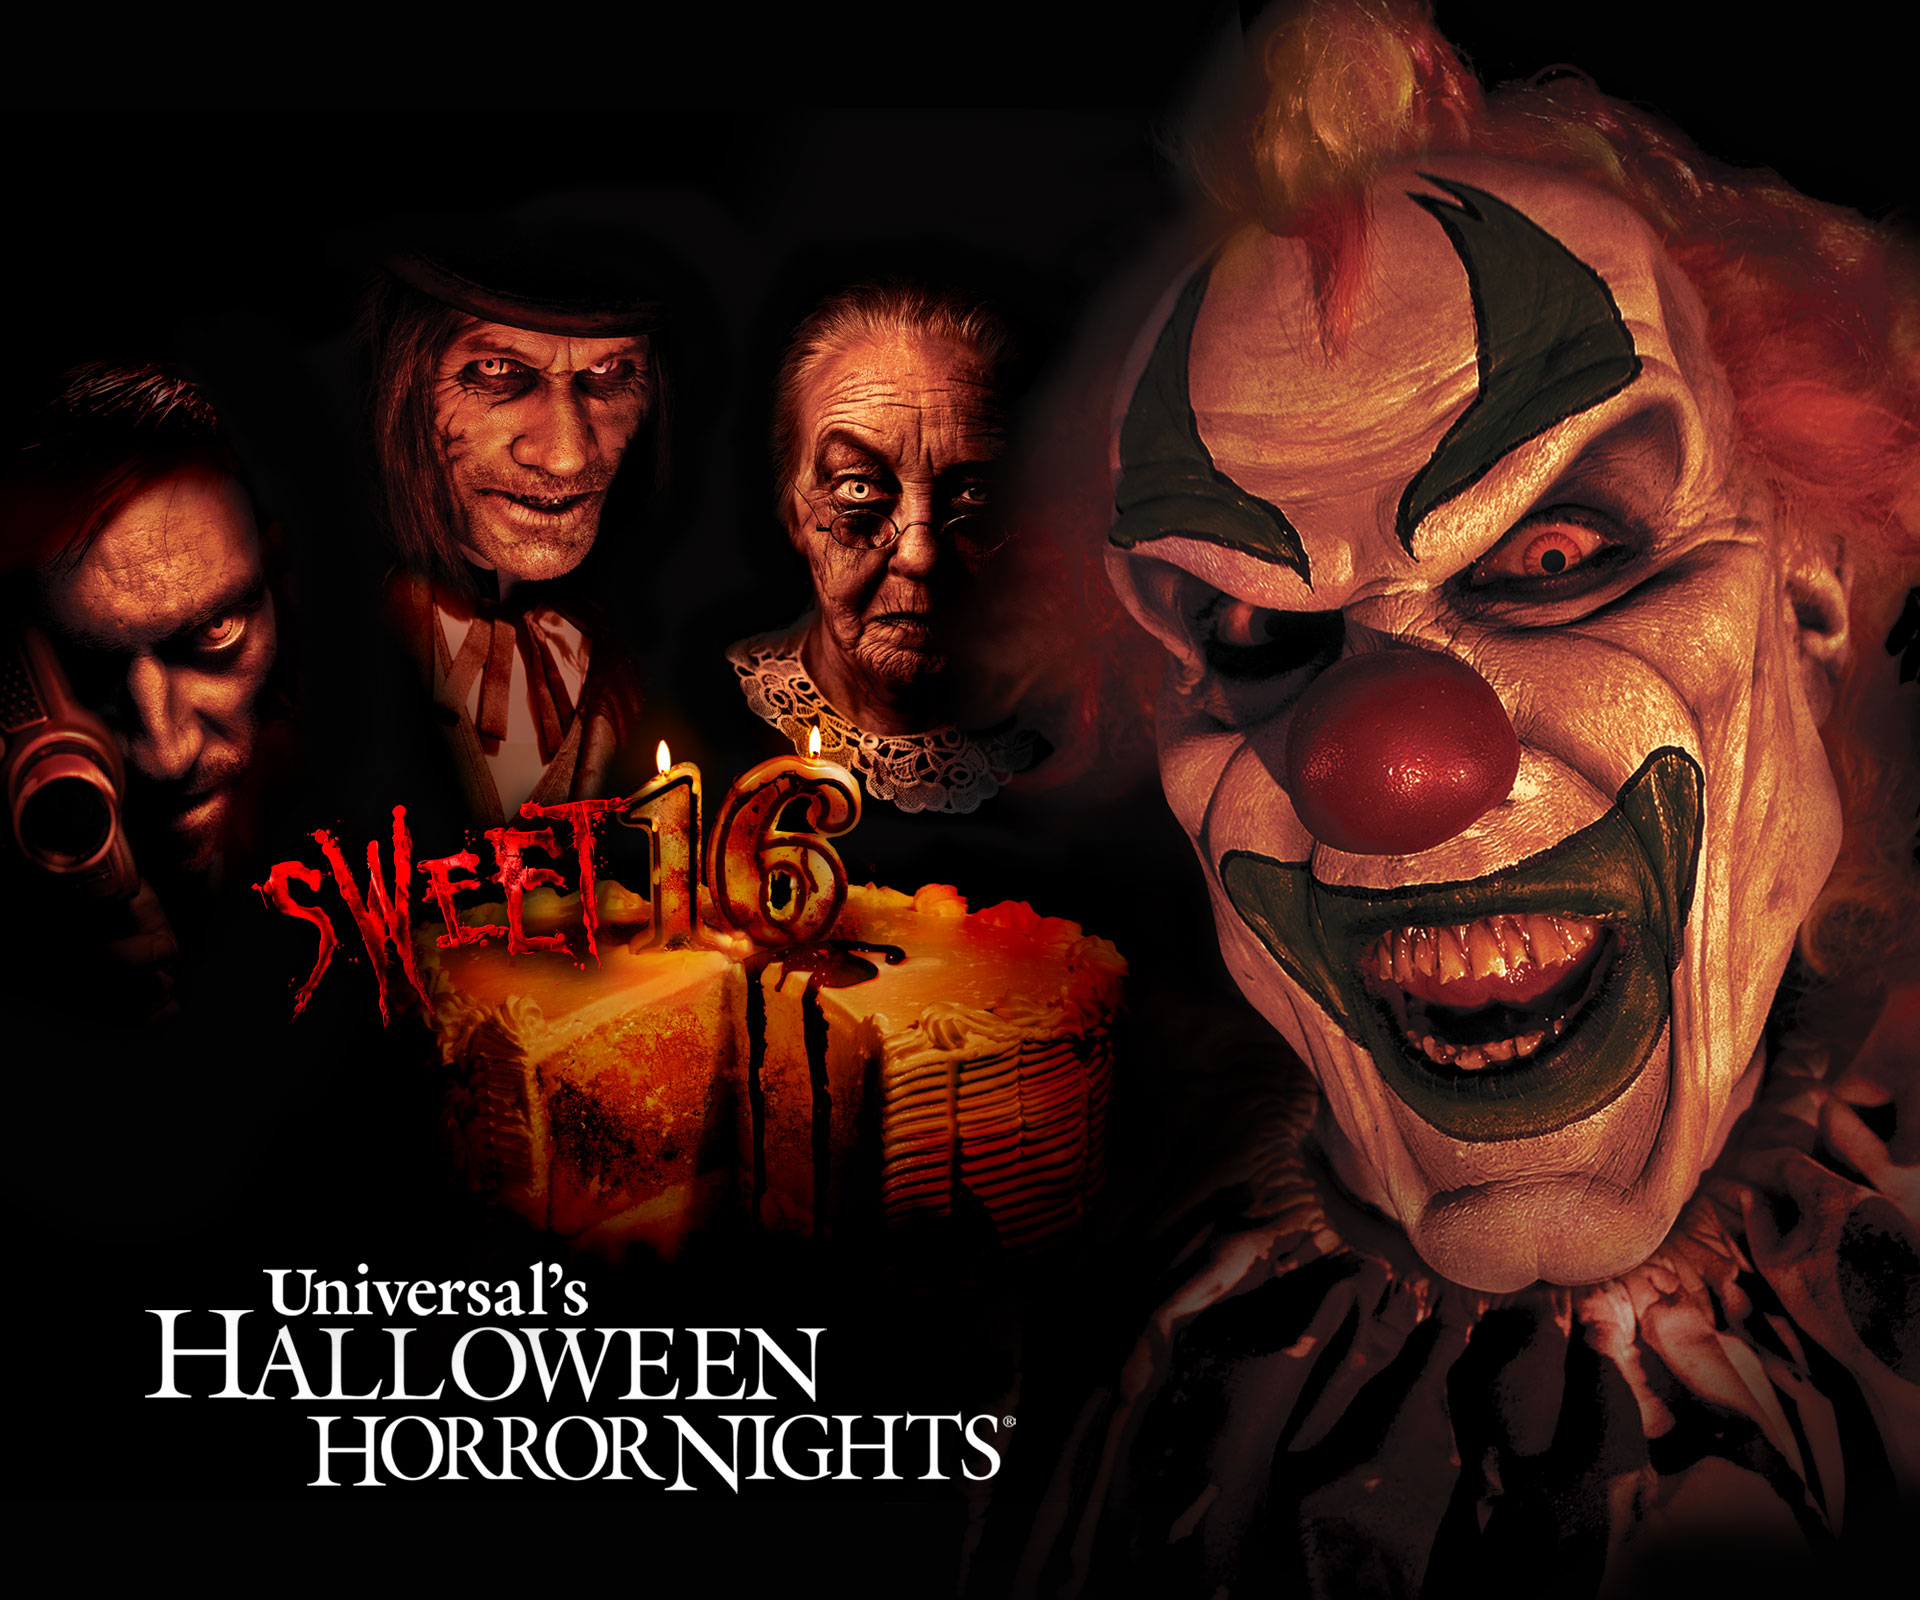 in 2001 at halloween horror nights xi jack replaced eddie when he was deemed too gory for a post 9112001 event